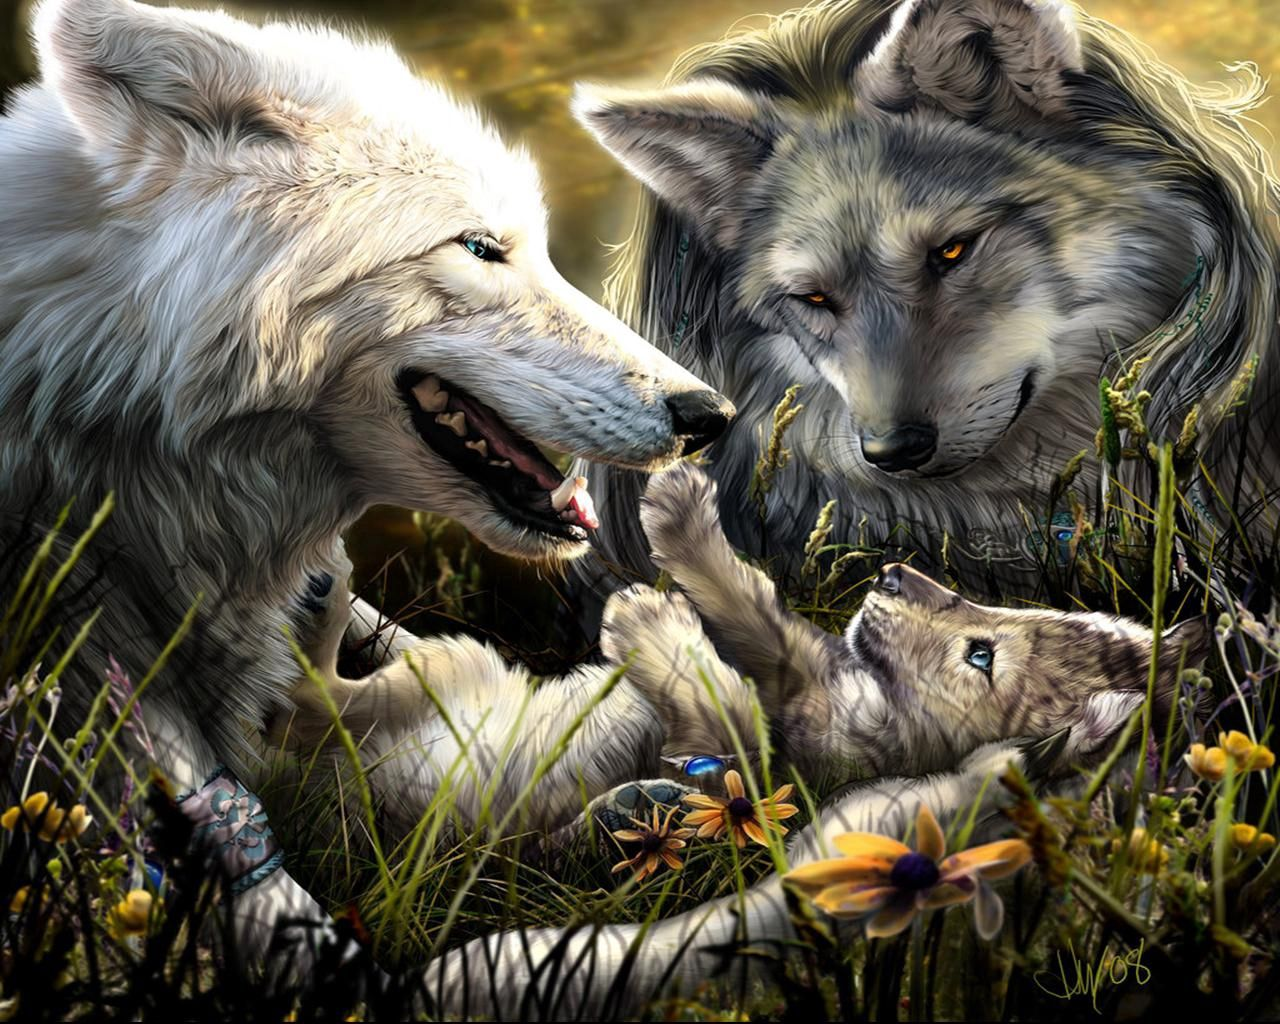 67441 download wallpaper Fantasy, Wolfs, Love, Family, Kid, Tot, Birth screensavers and pictures for free